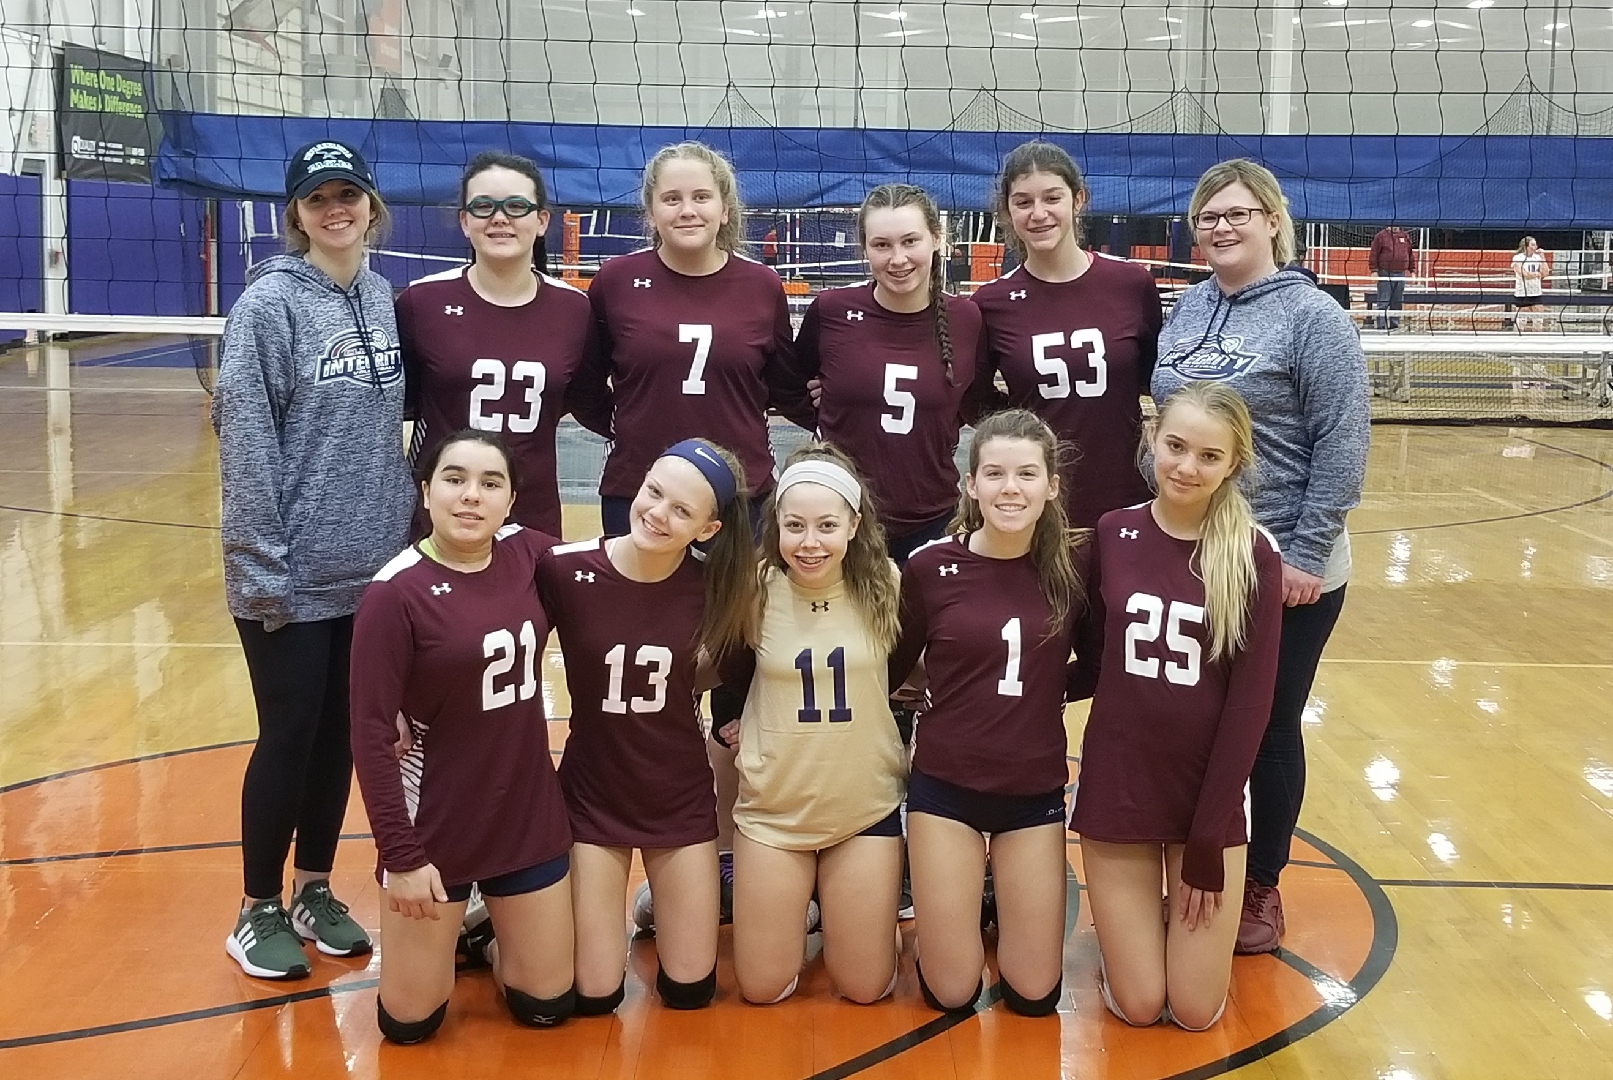 14 R WIN SILVER MEDAL